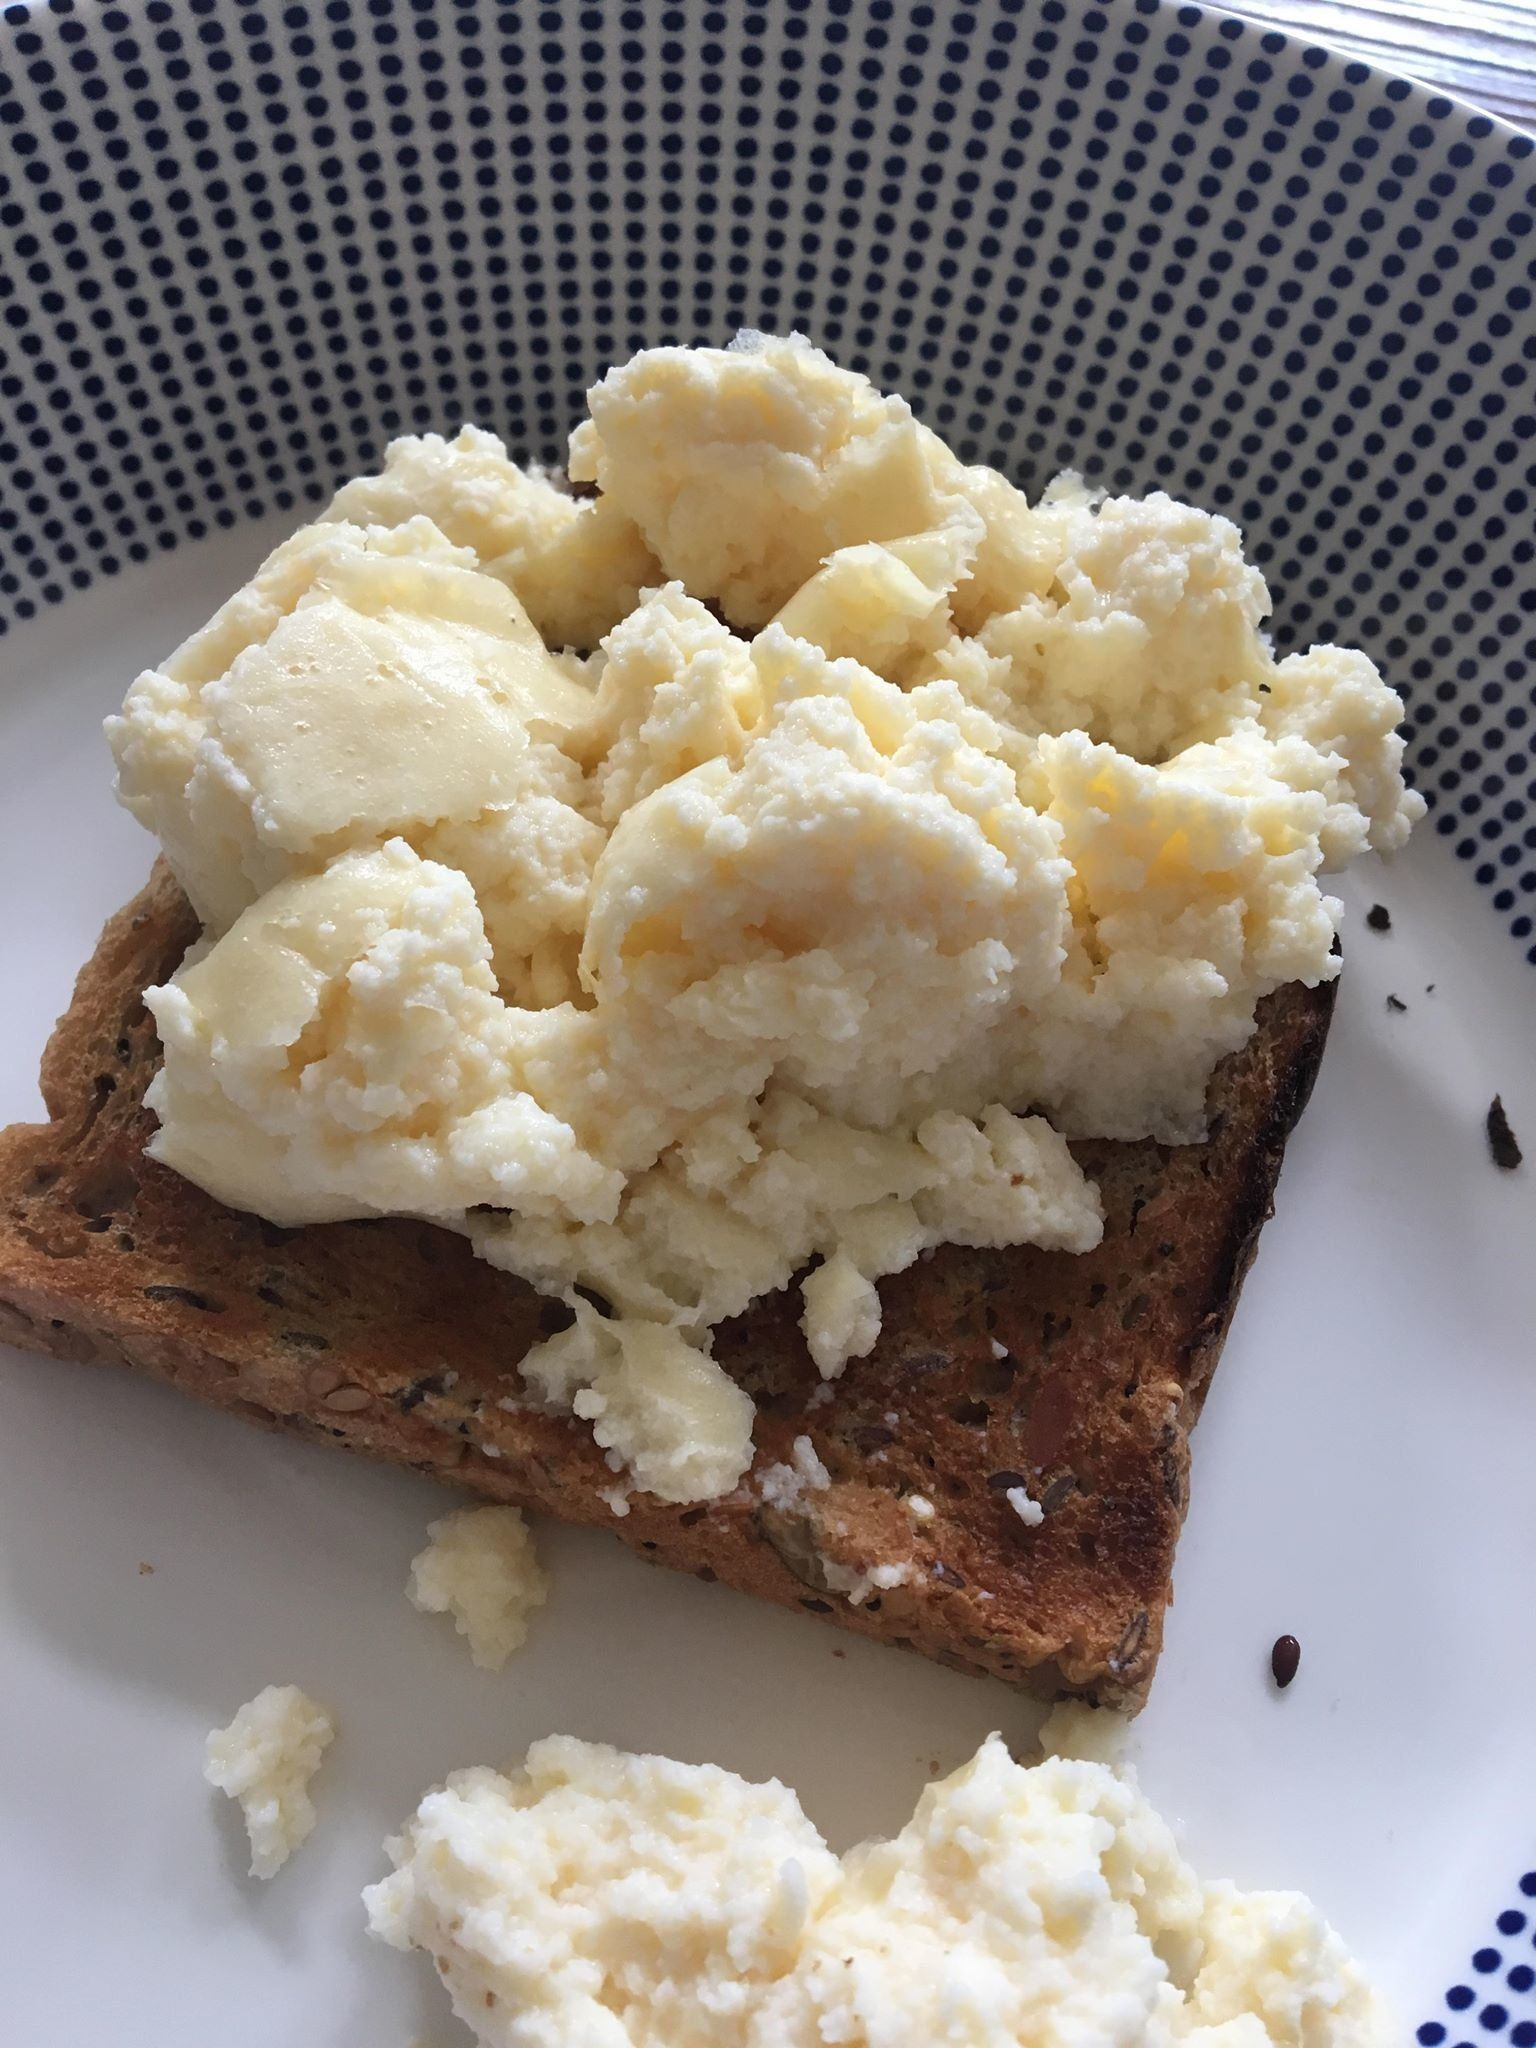 EGGCELLENT: Can Iceland's Microwave Scrambled Eggs Beat The Homemade